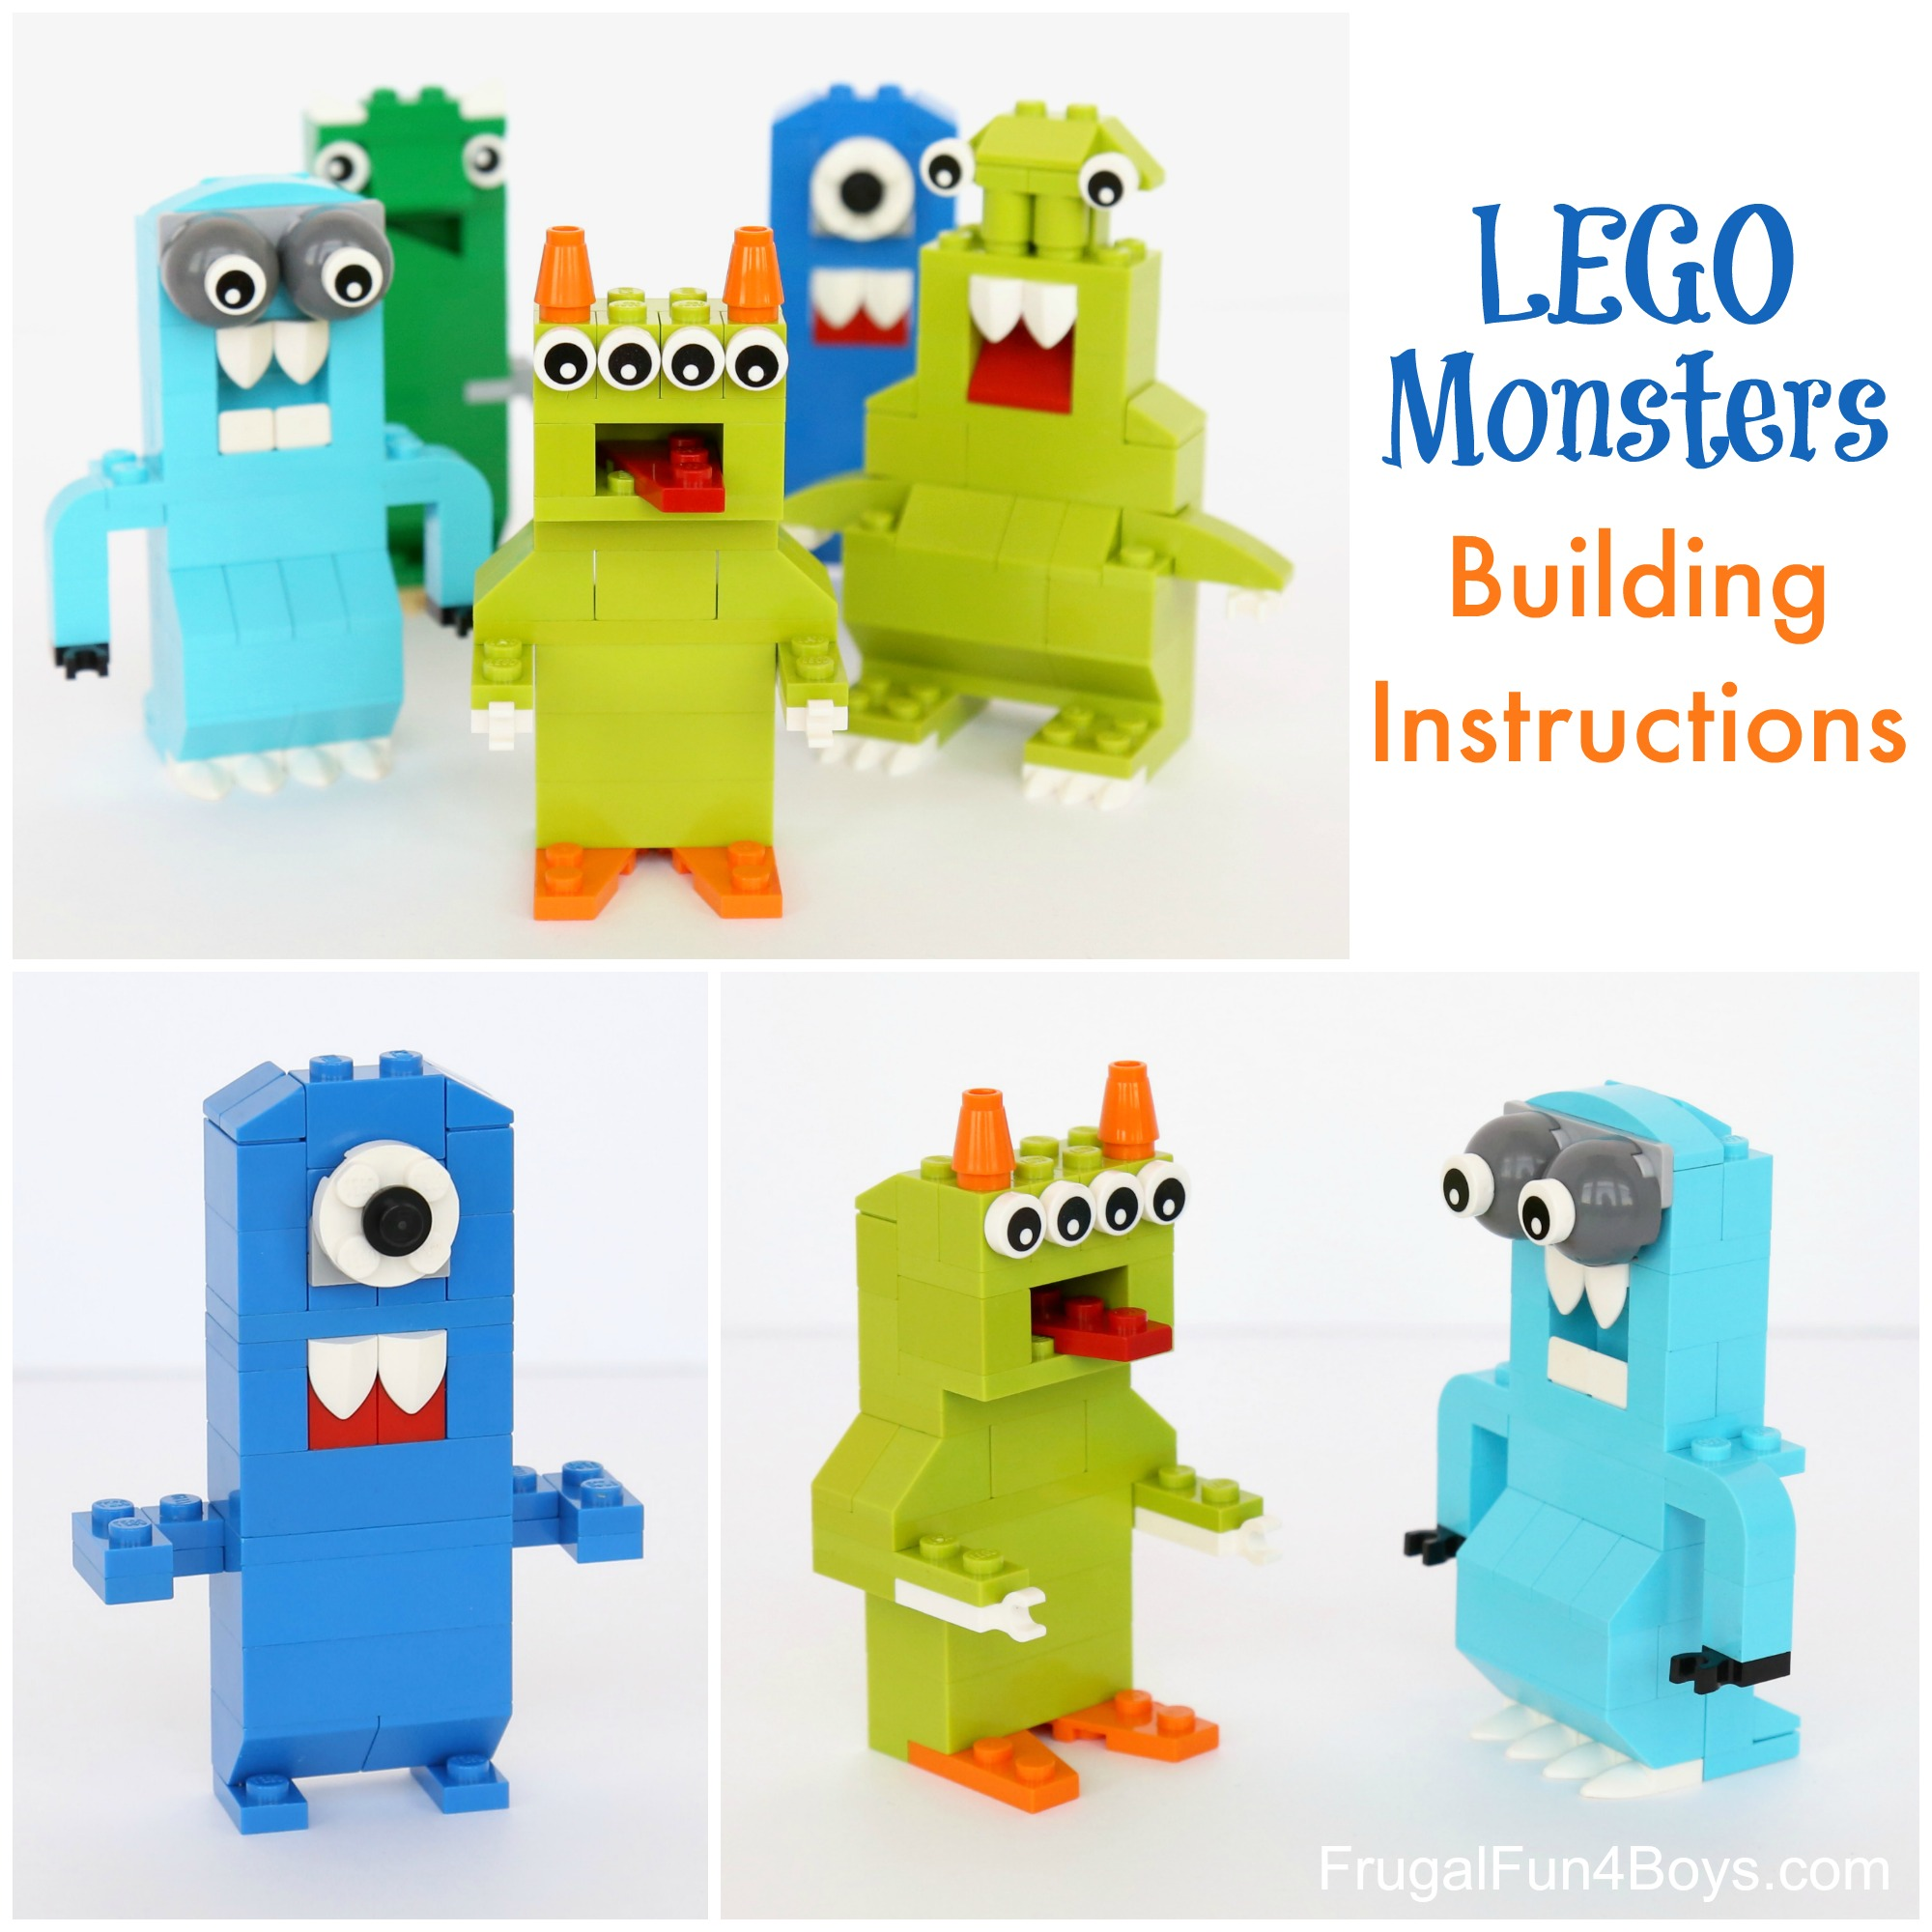 Lego Monsters Building Instructions Frugal Fun For Boys And Girls